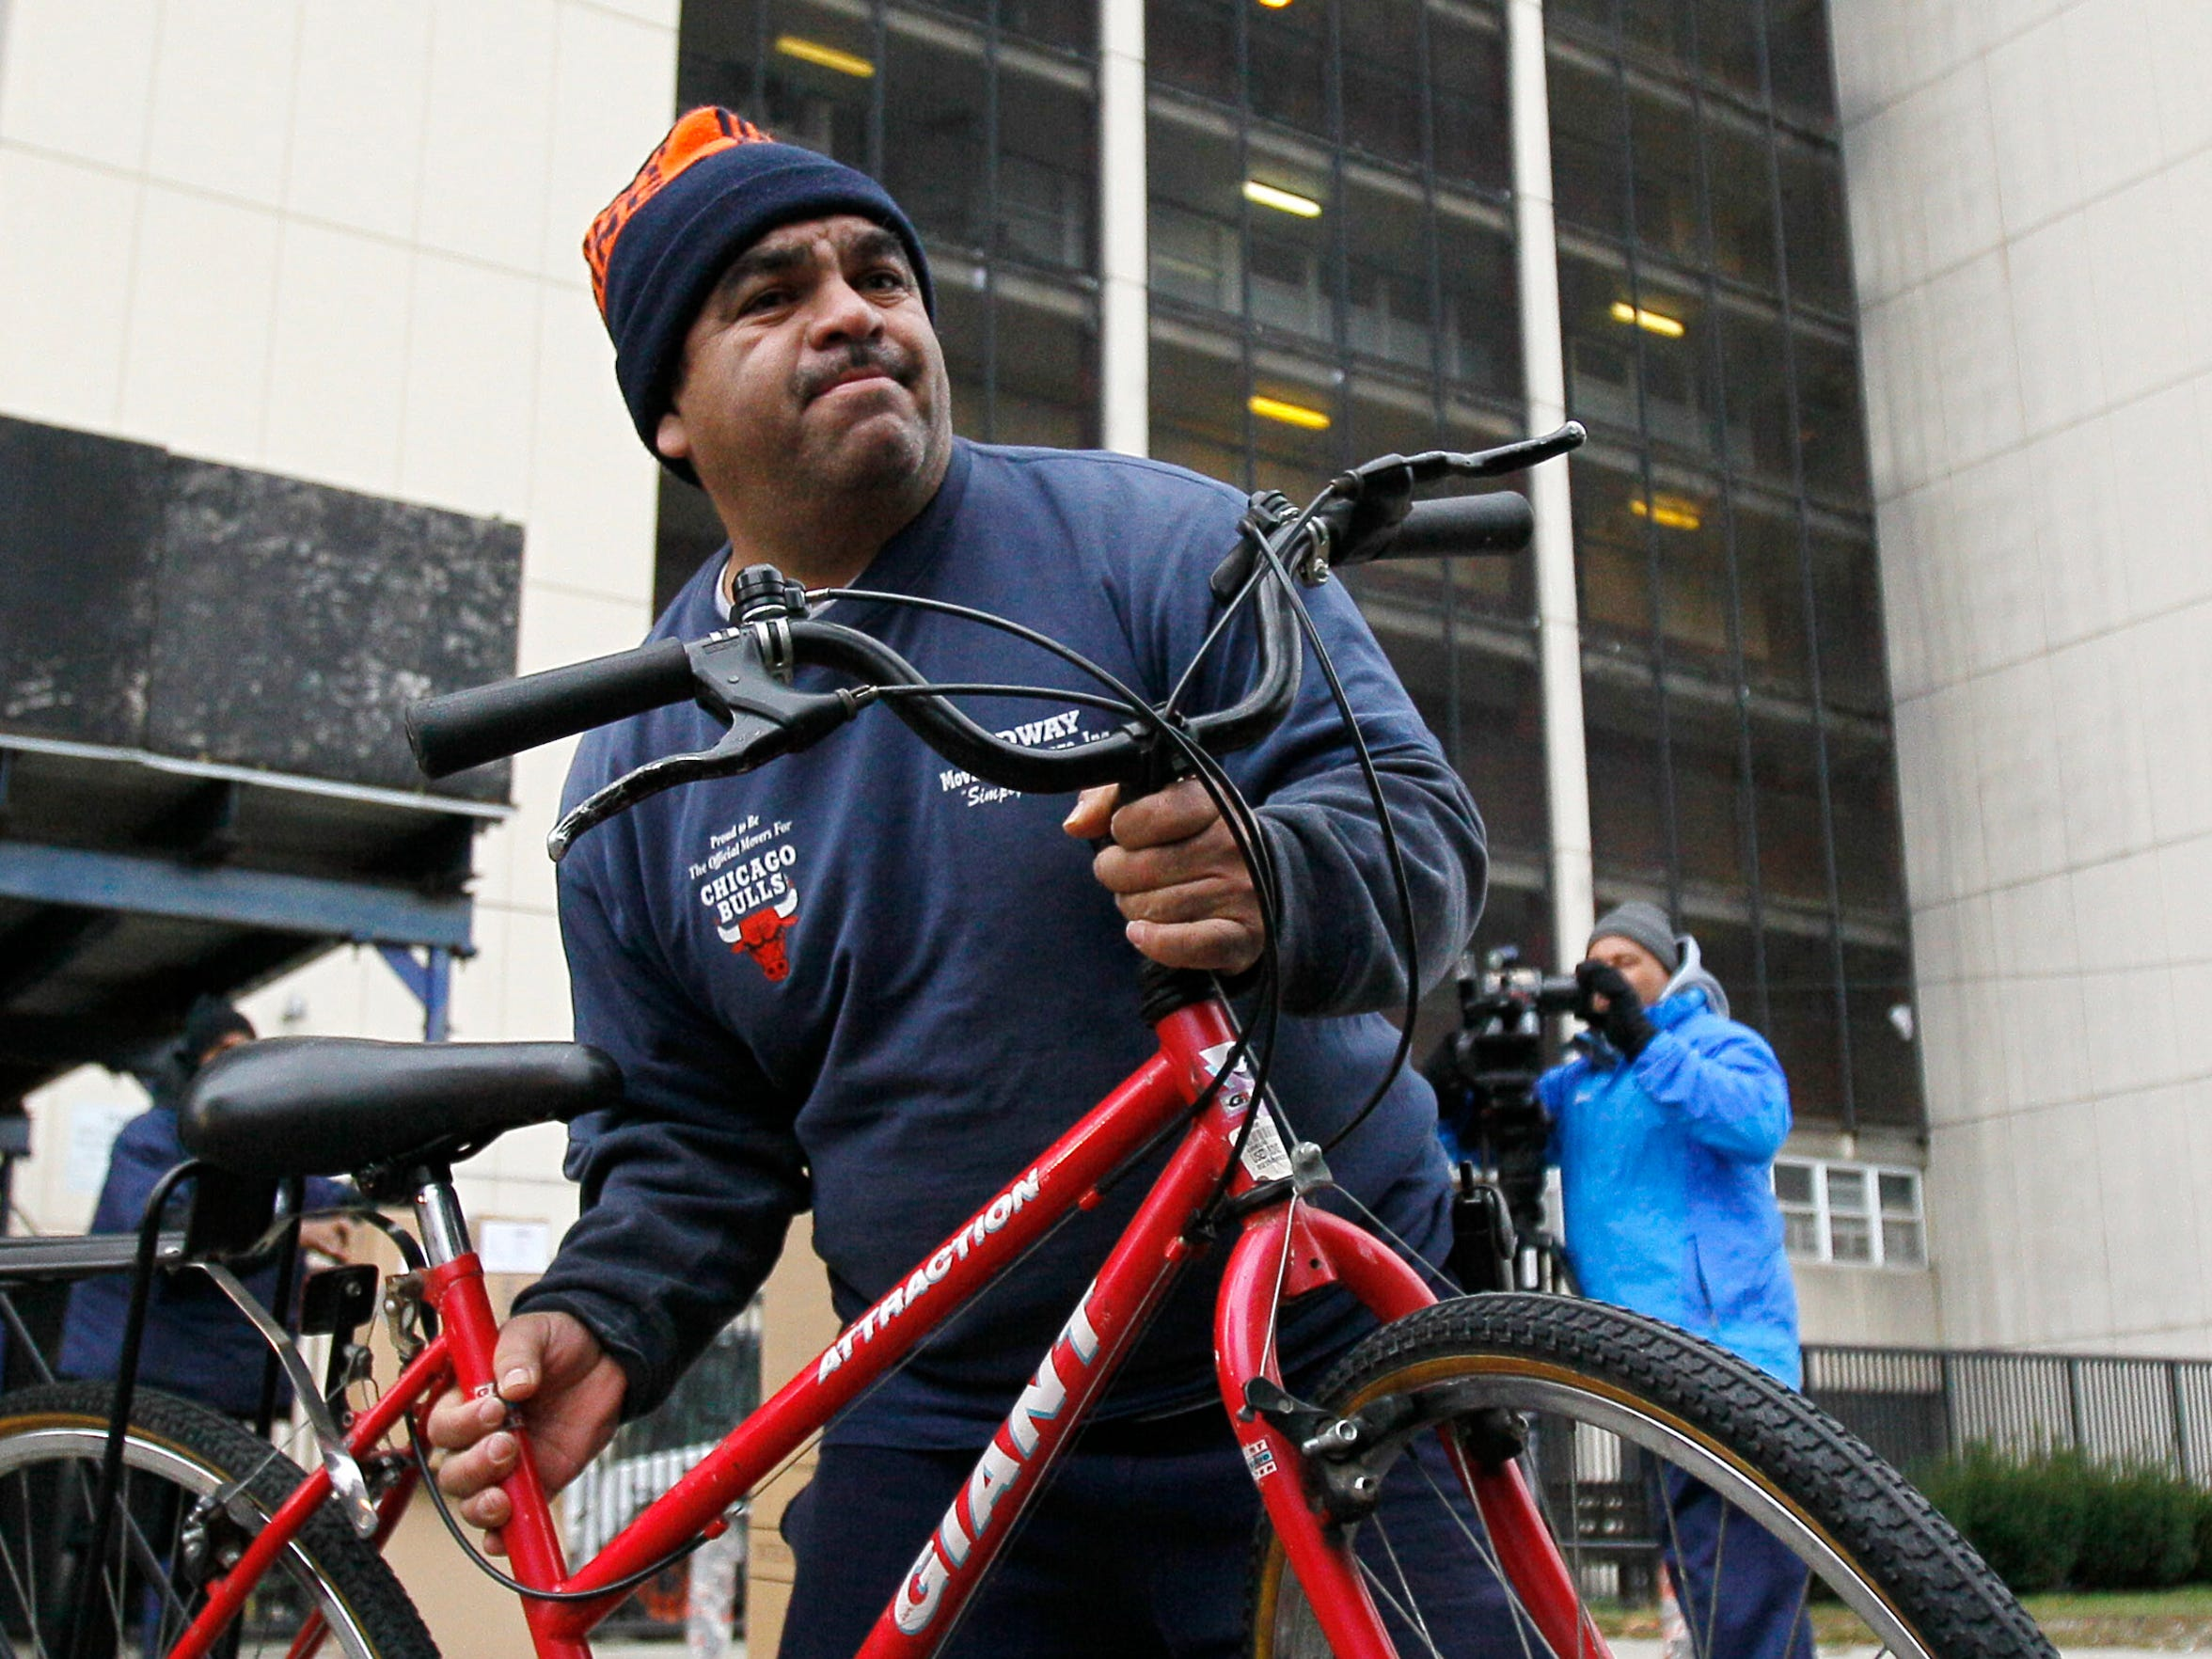 A mover, hired by the Chicago Housing Authority, works